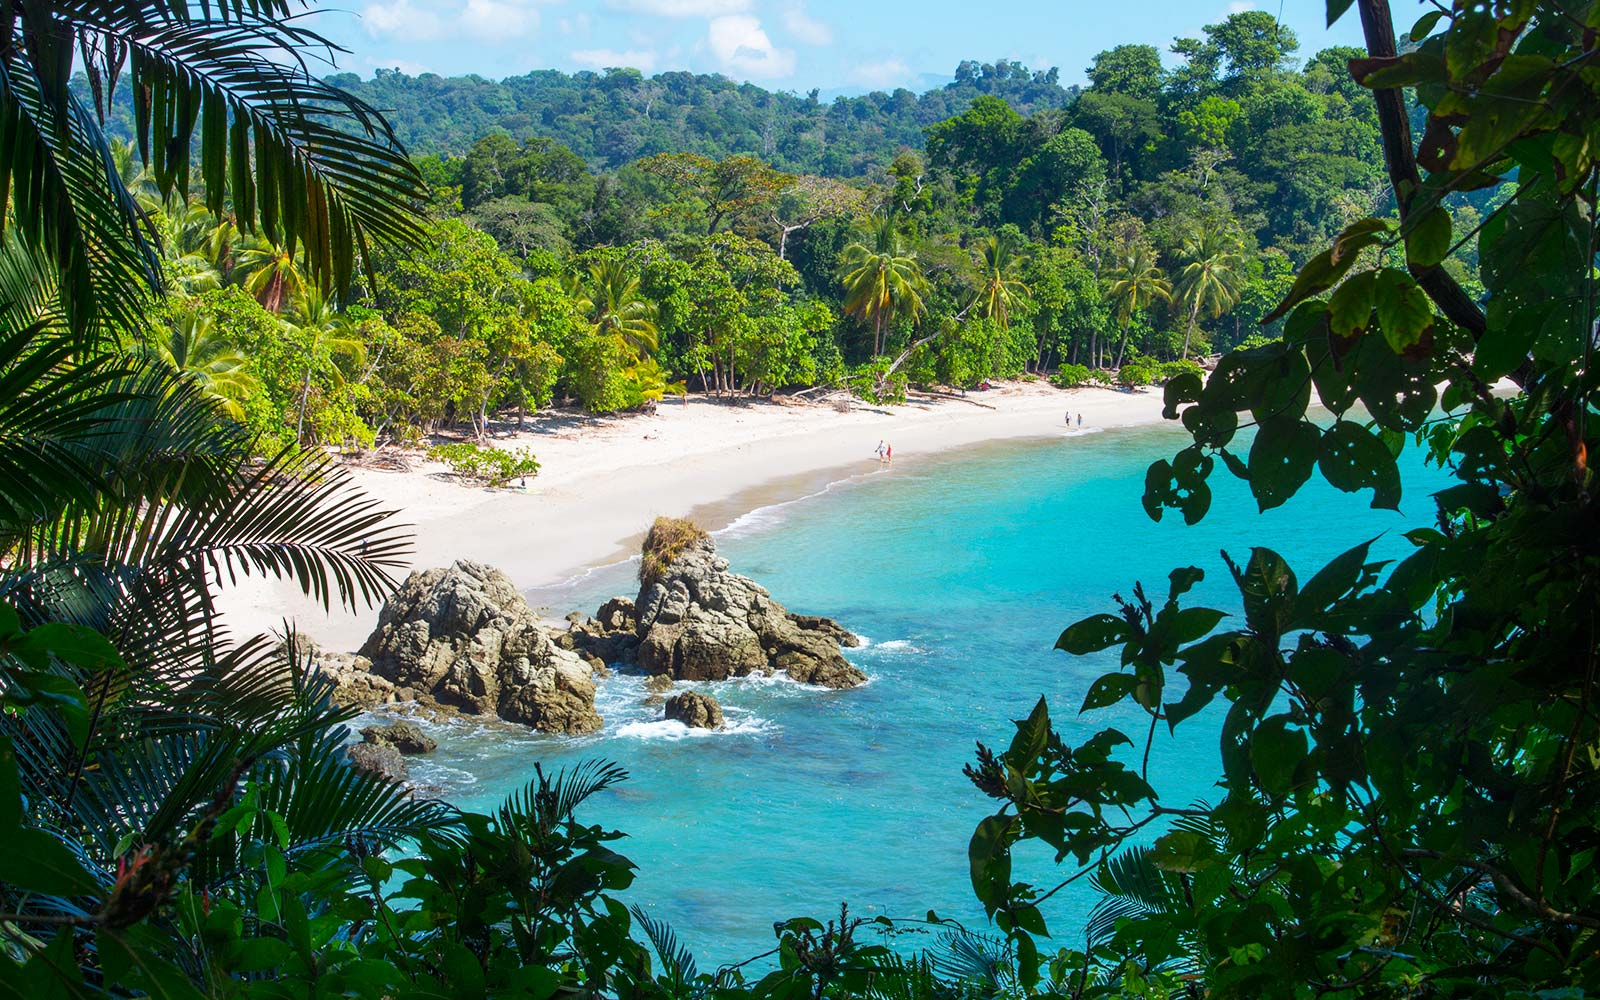 Flights To Costa Rica Are On Sale For 205 Round Trip